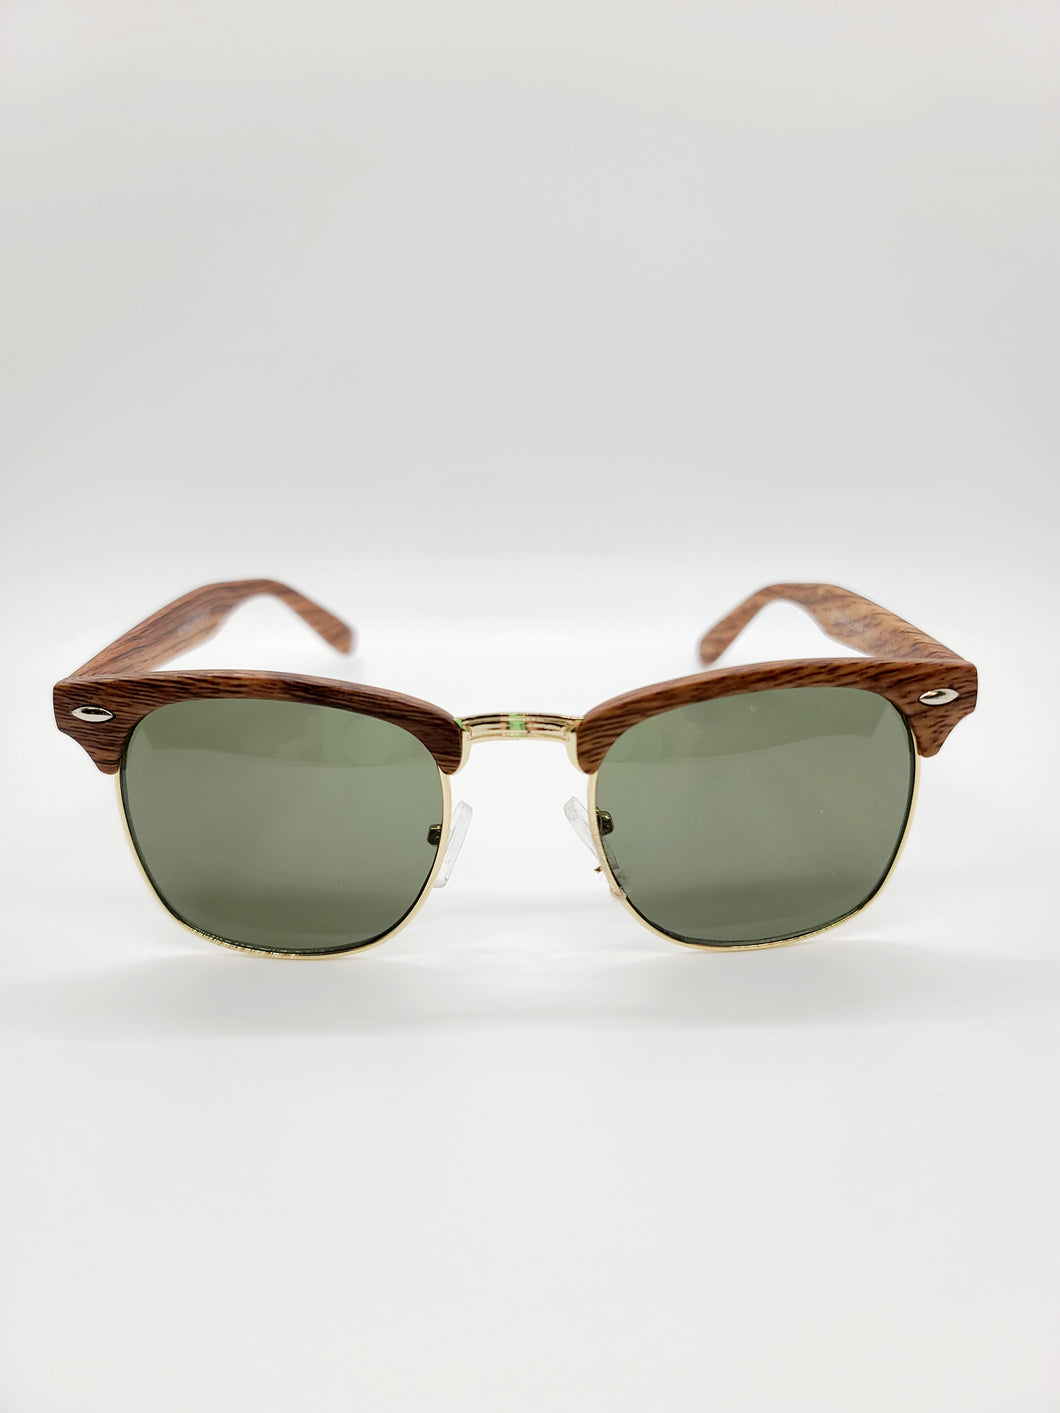 Aviator style sunglasses with wood trim and black lenses